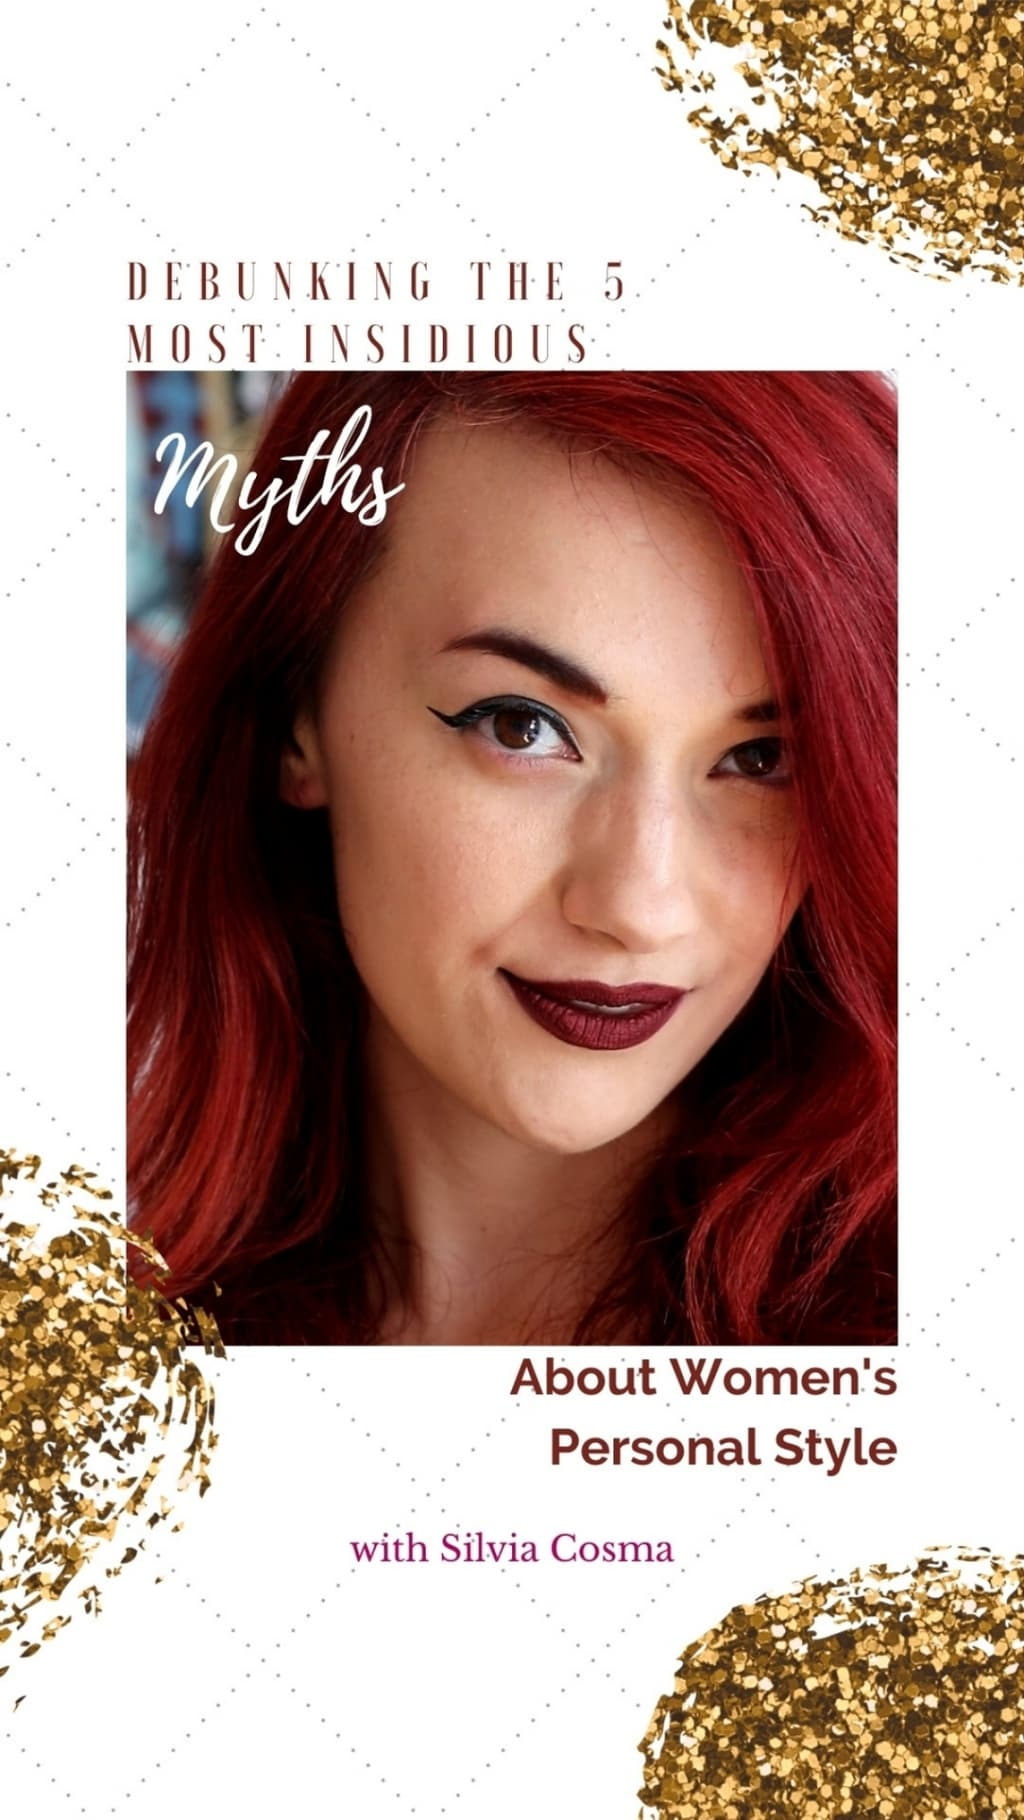 Myths About Women's Personal Style